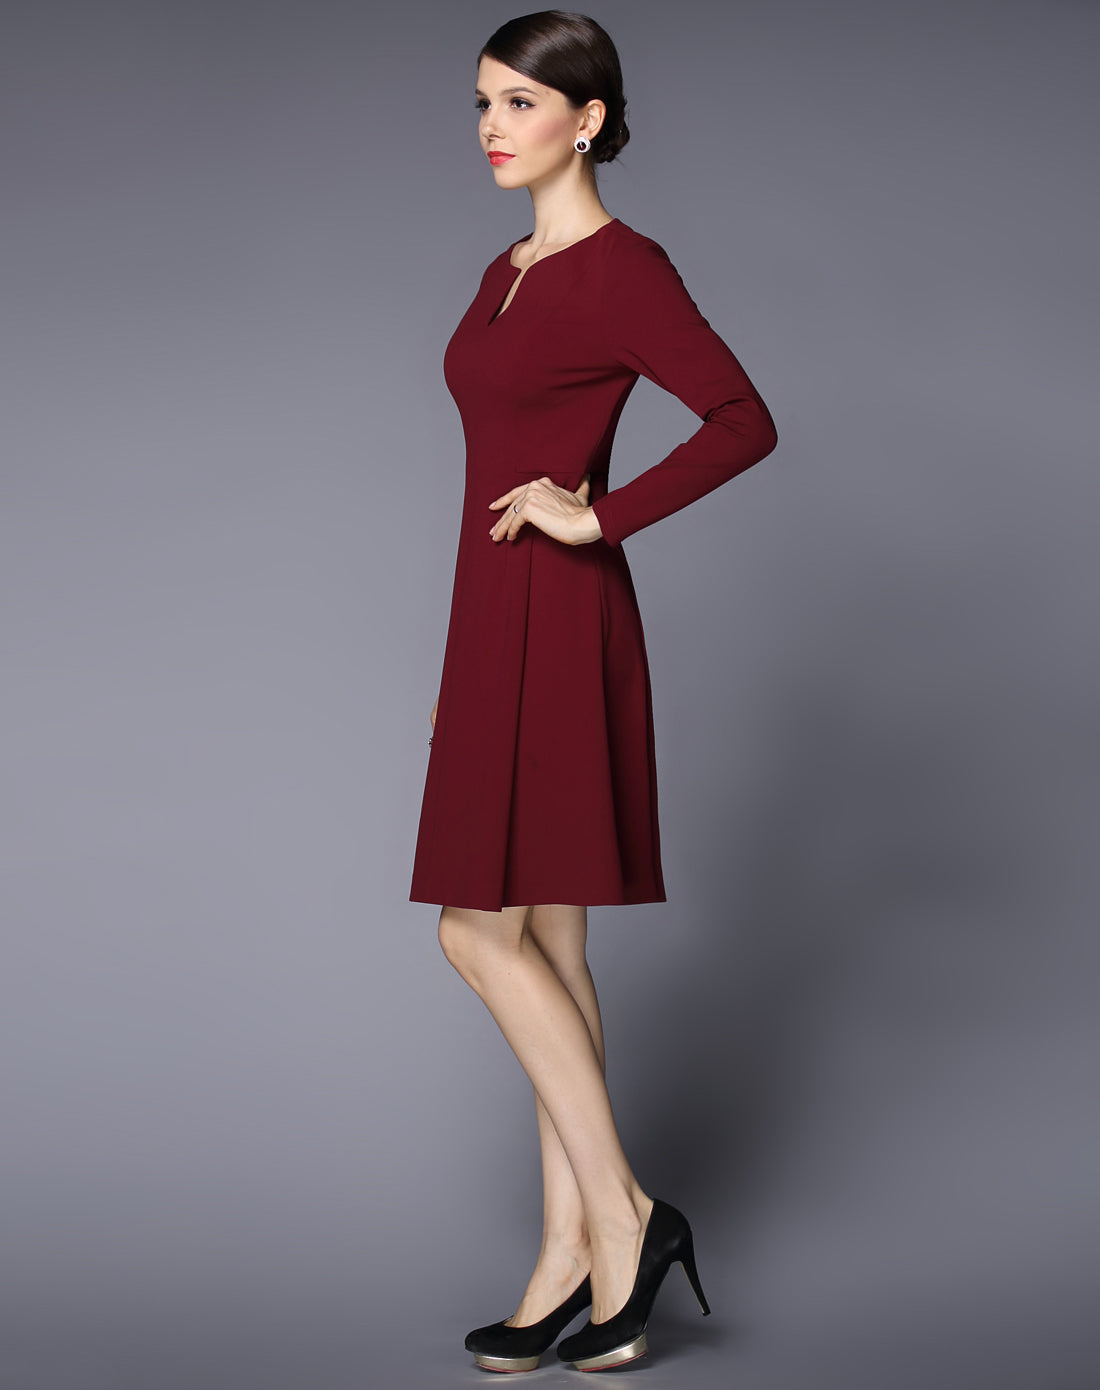 Office A-Line Skirt Keyhole neck Long Sleeves Above Knee Dress - ATLASDAY